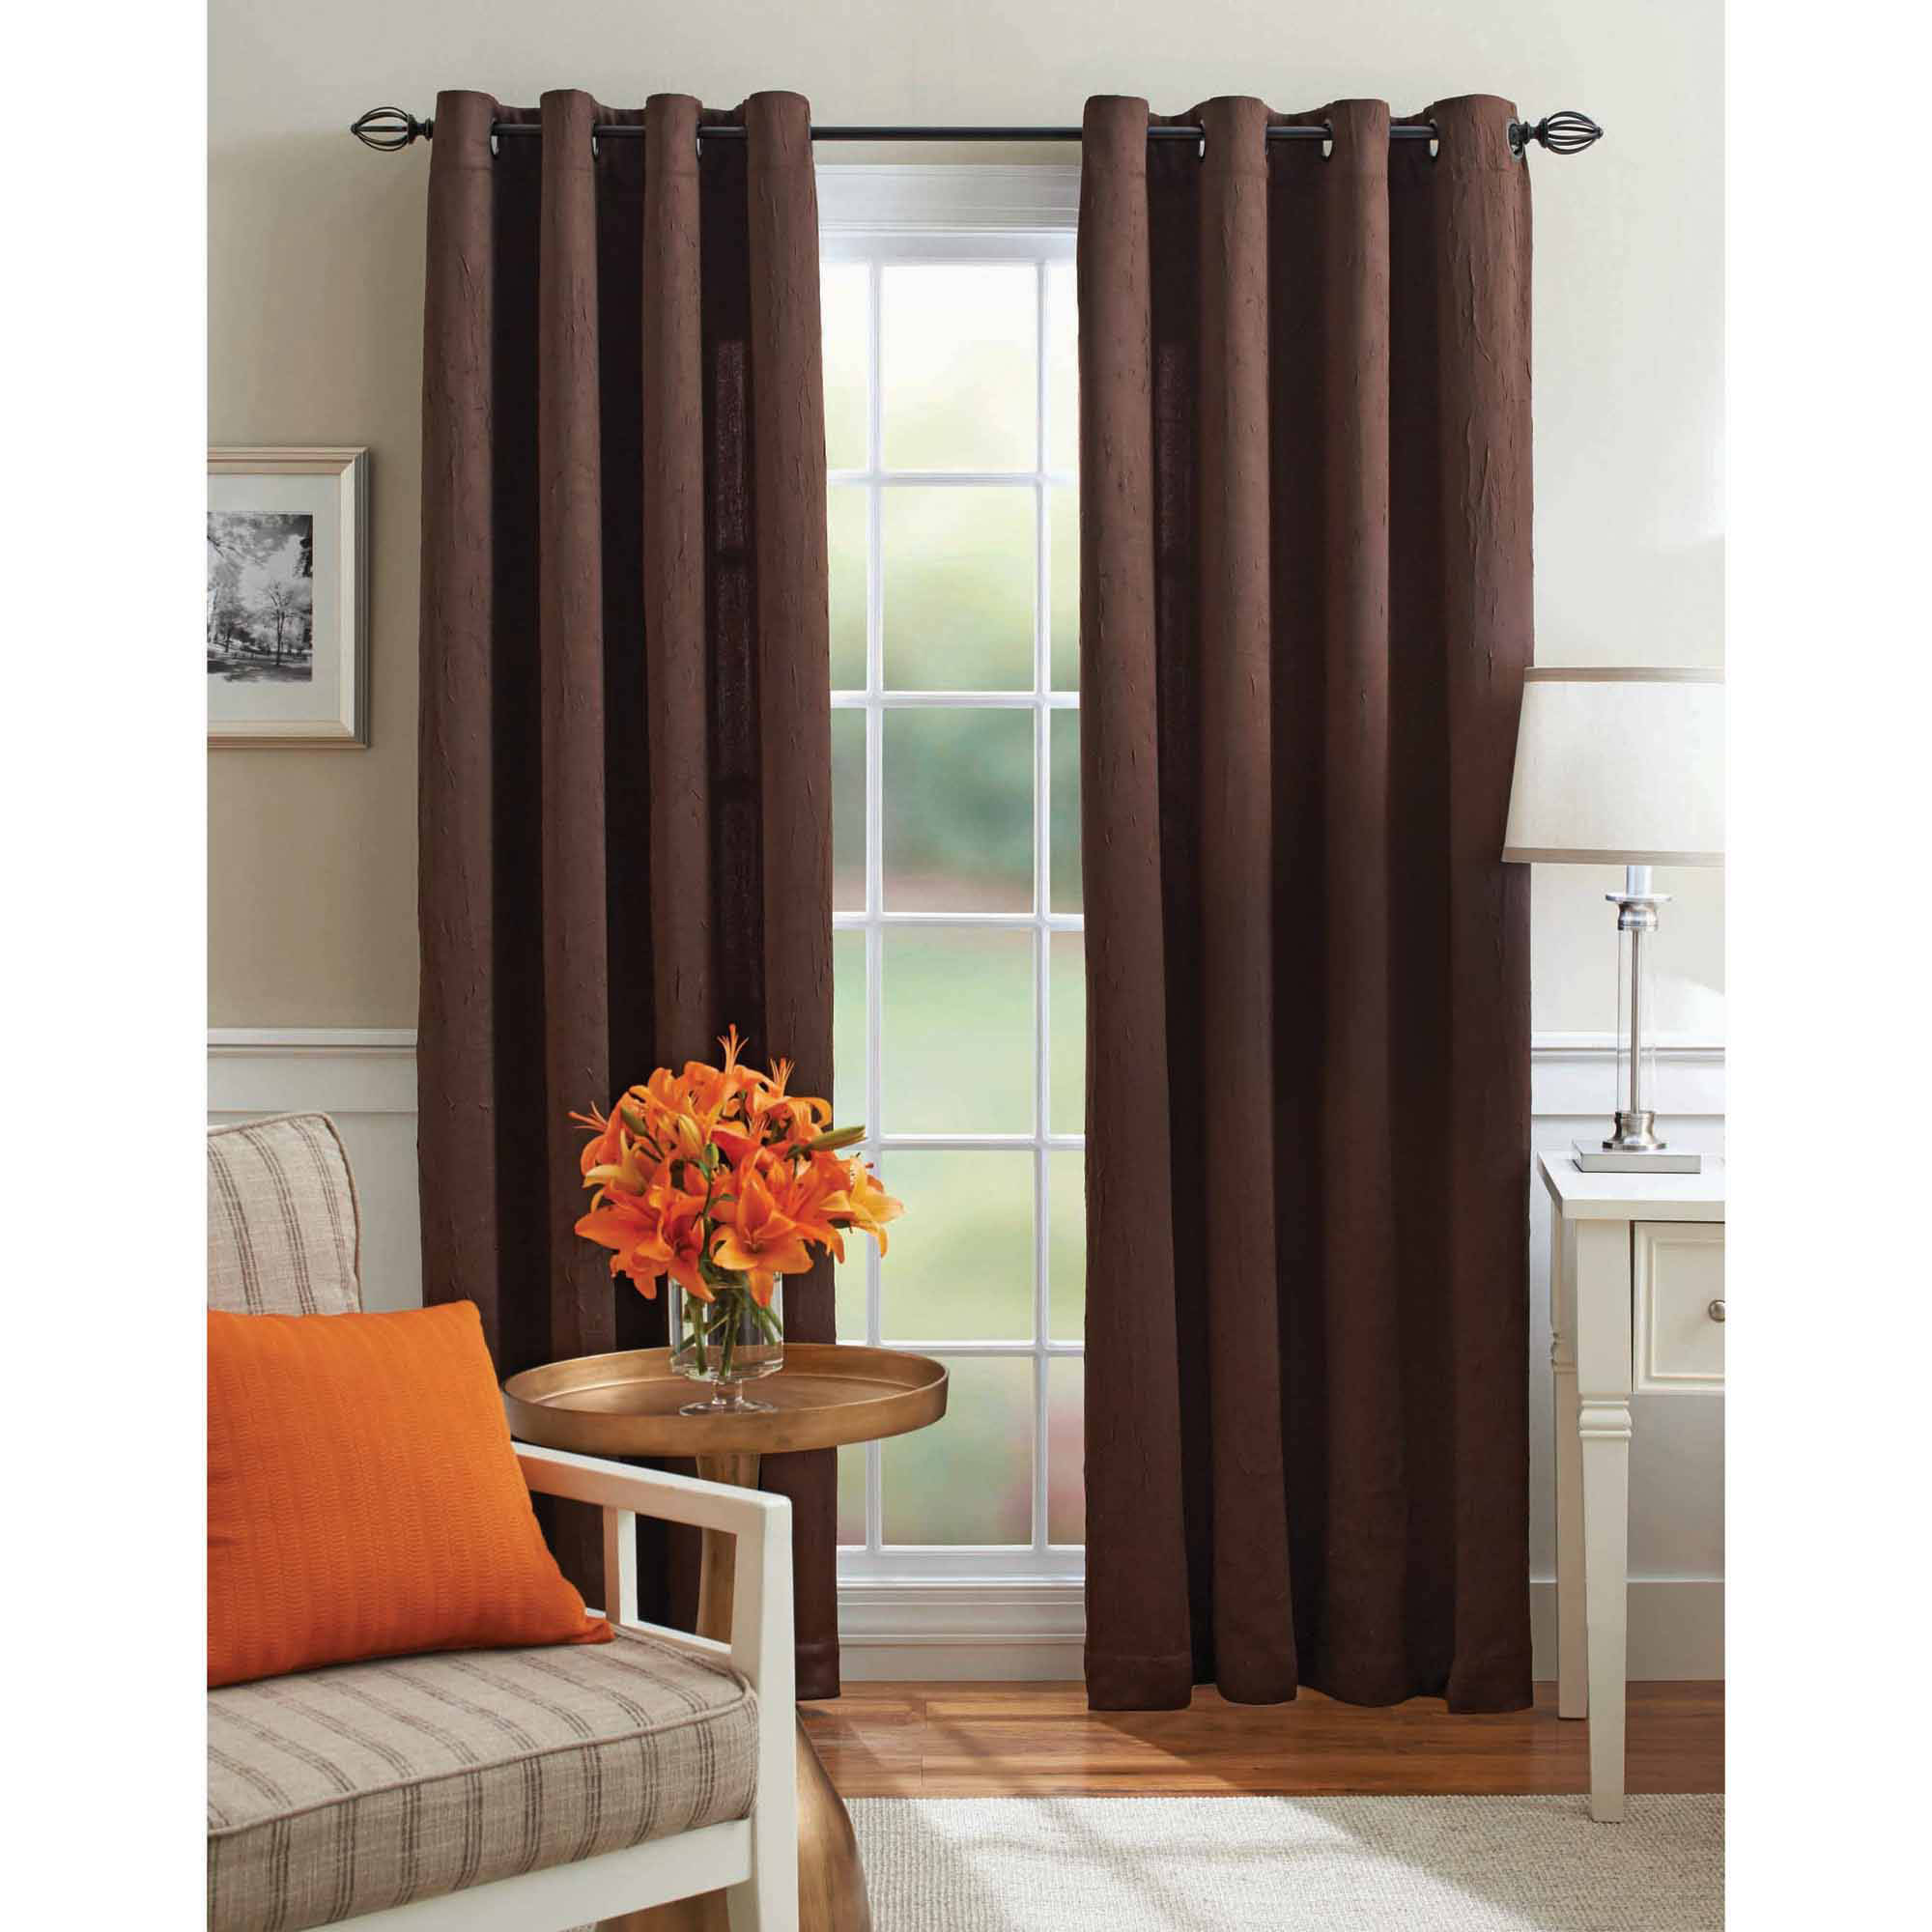 Better Homes and Gardens Crushed Room Darkening Curtain